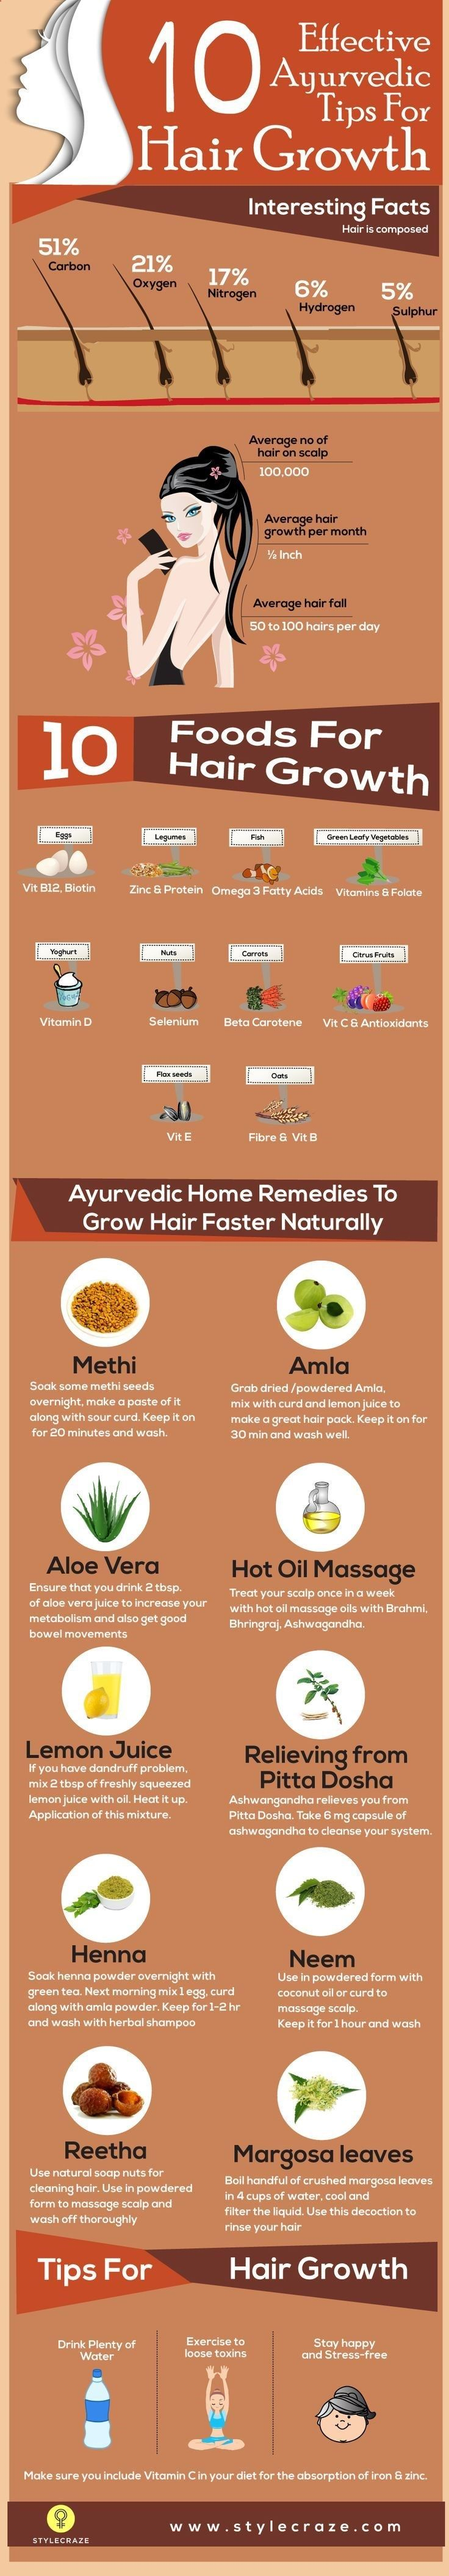 10 Effective Ayurvedic Tips For Hair Growth Skincare Hair Care